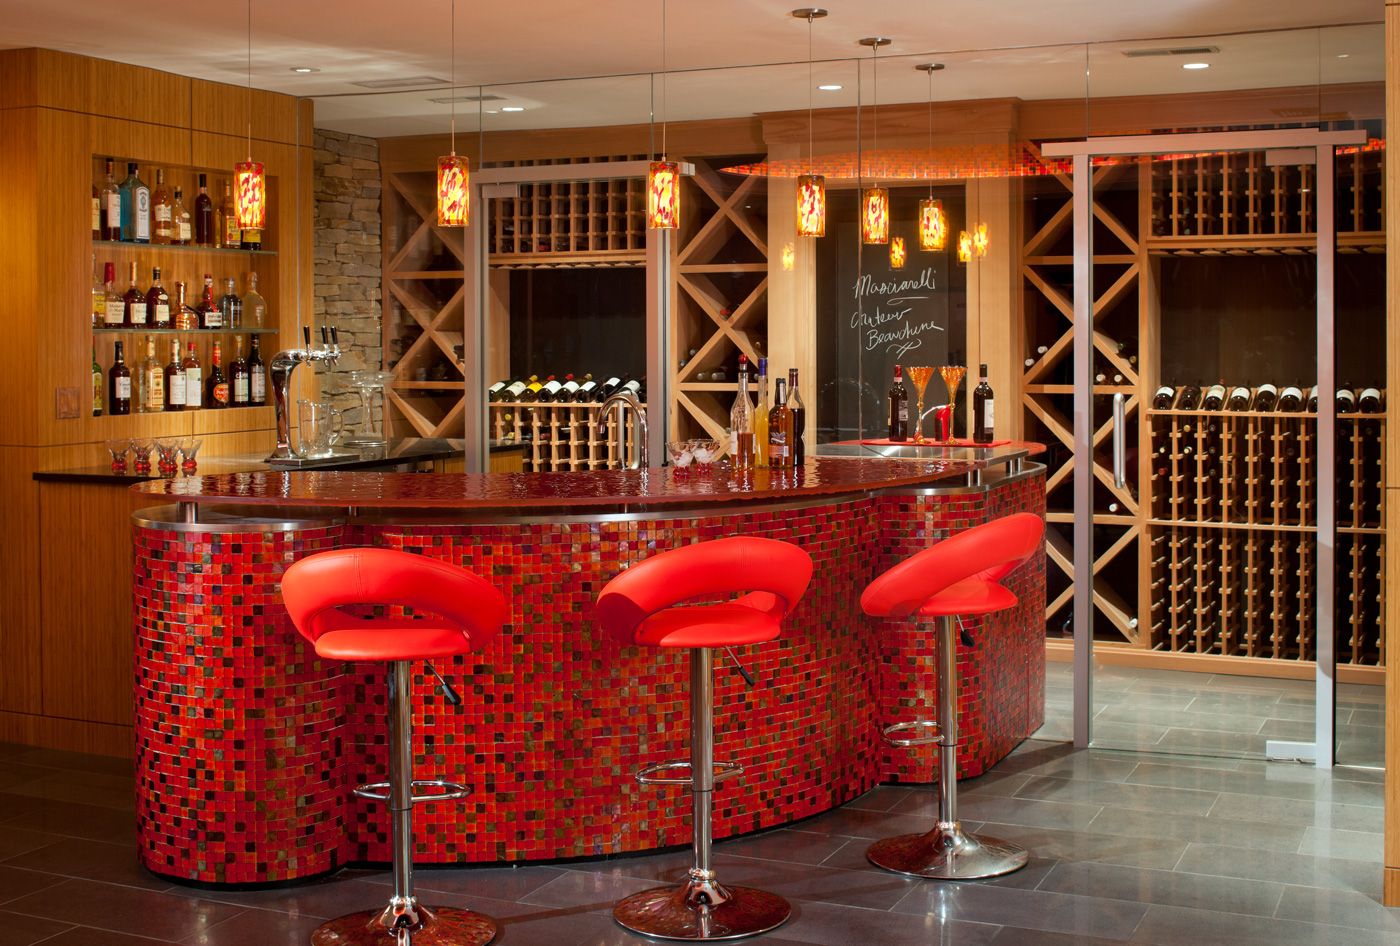 Red cellar wine bar by Kistler & Knapp Builders, designed by LDa Architecture & Interiors